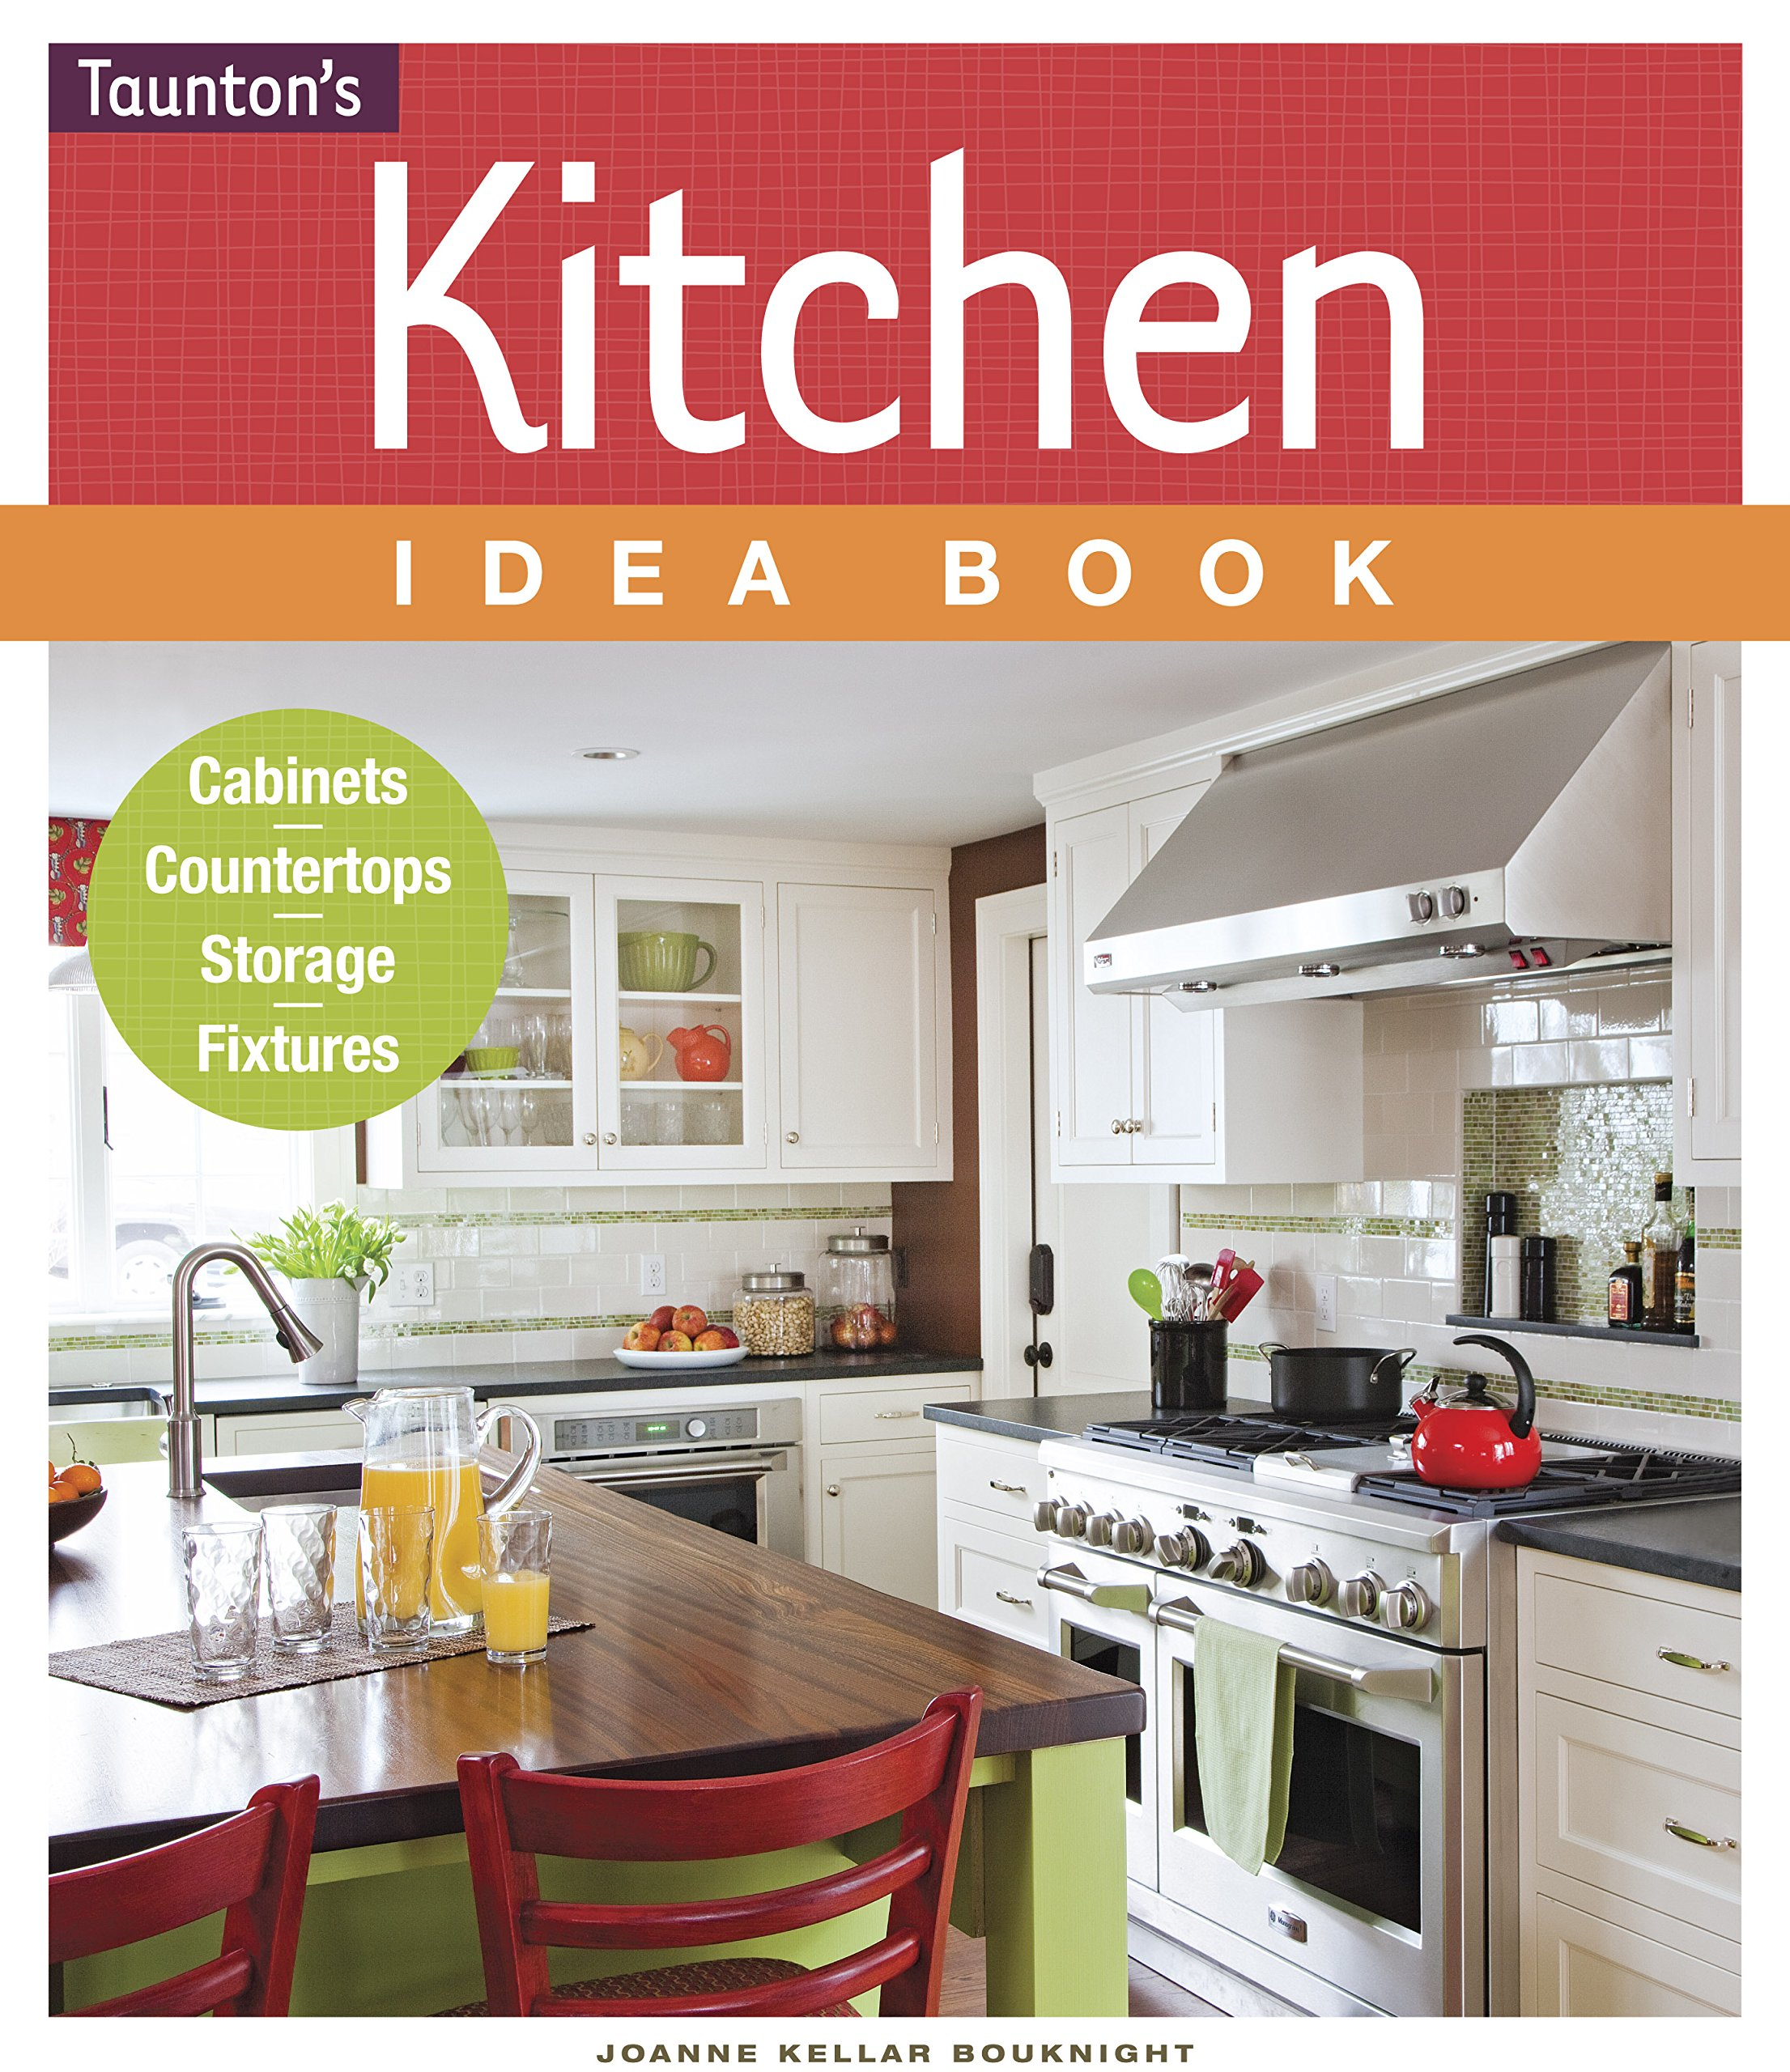 Kitchen Idea Book Taunton Home Idea Books Joanne Kellar